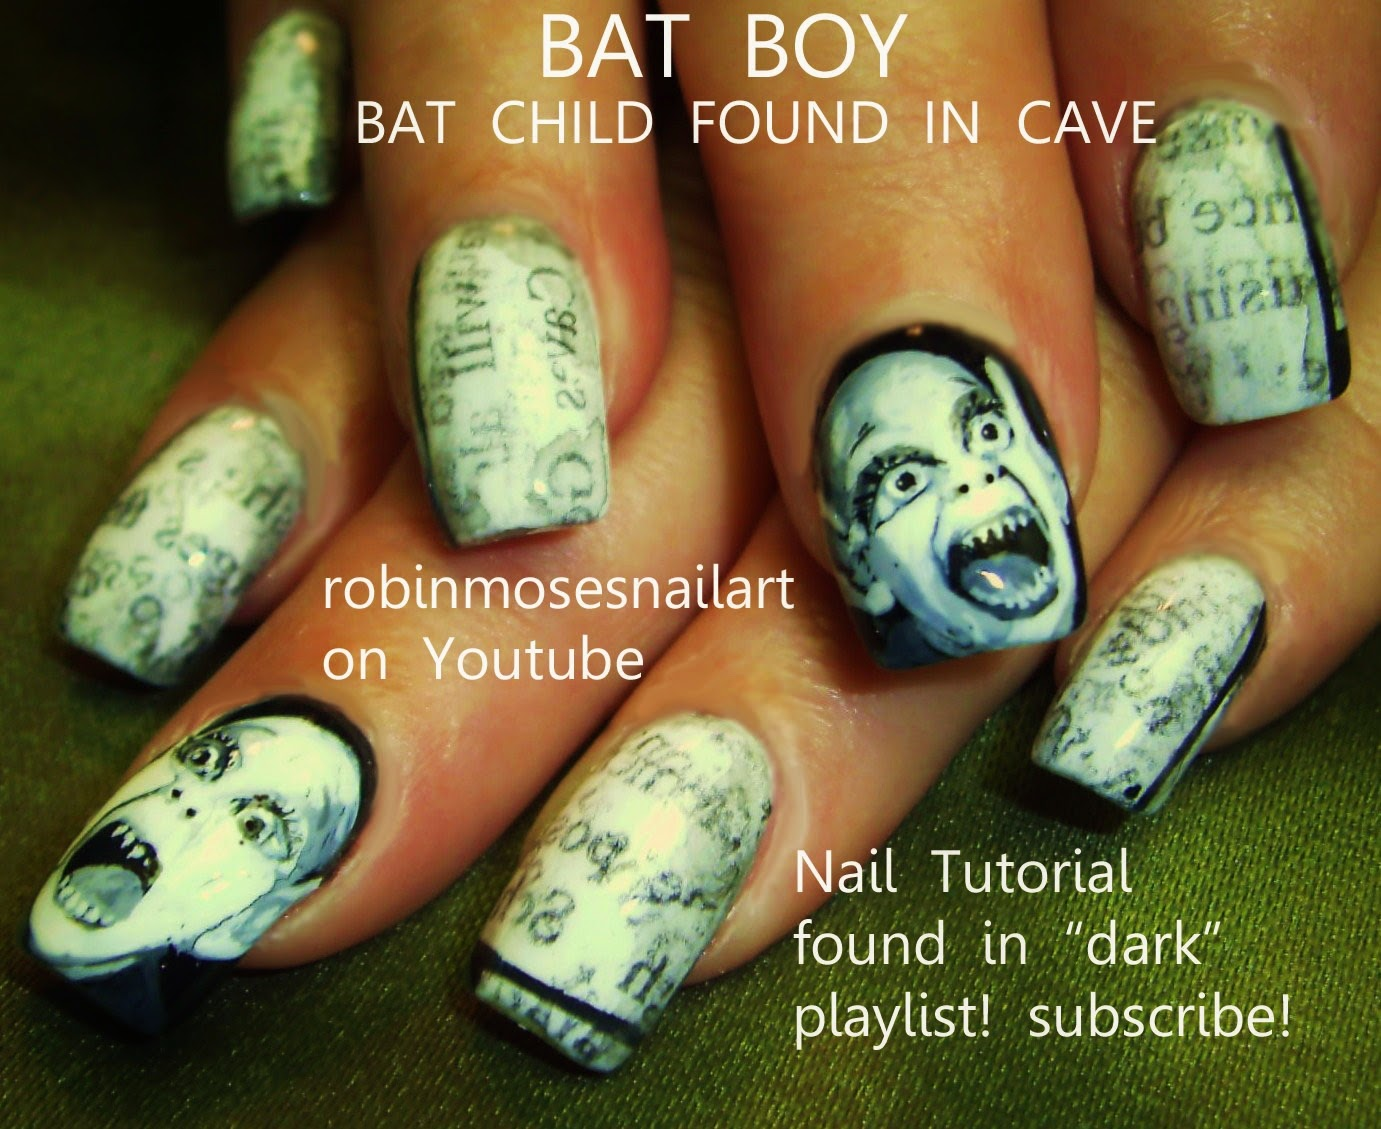 Halloween nails halloween nail art easy halloween nails diy halloween nails halloween nail art easy halloween nails diy halloween nails diy halloween ideas halloween nail gallery solutioingenieria Image collections